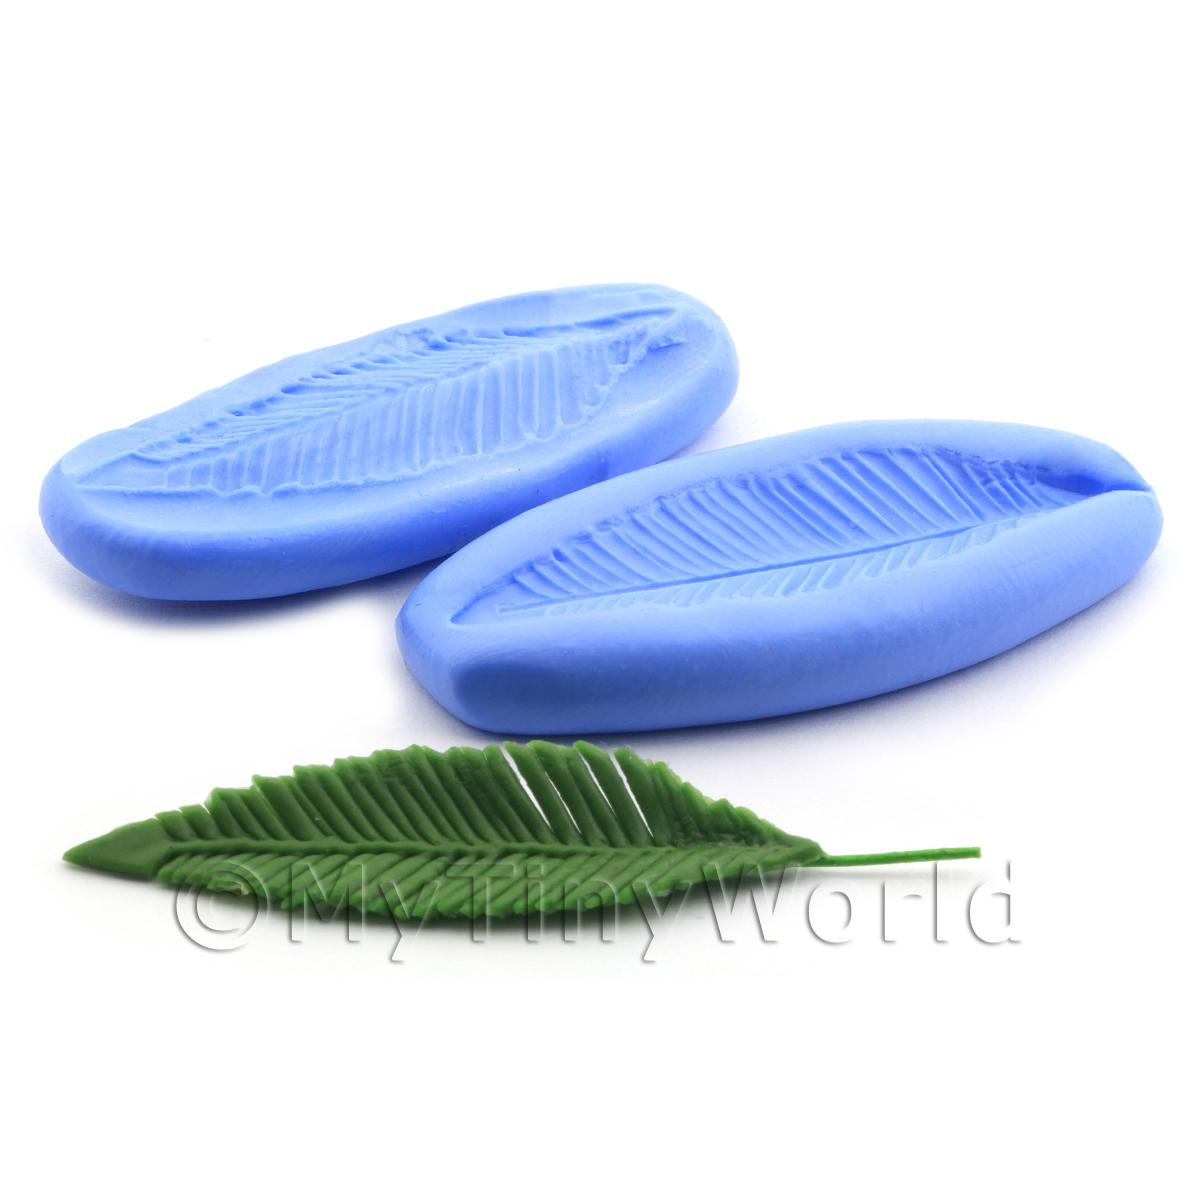 Dolls House Miniature 2 Part Huge Palm Frond Reusable Silicone Mould